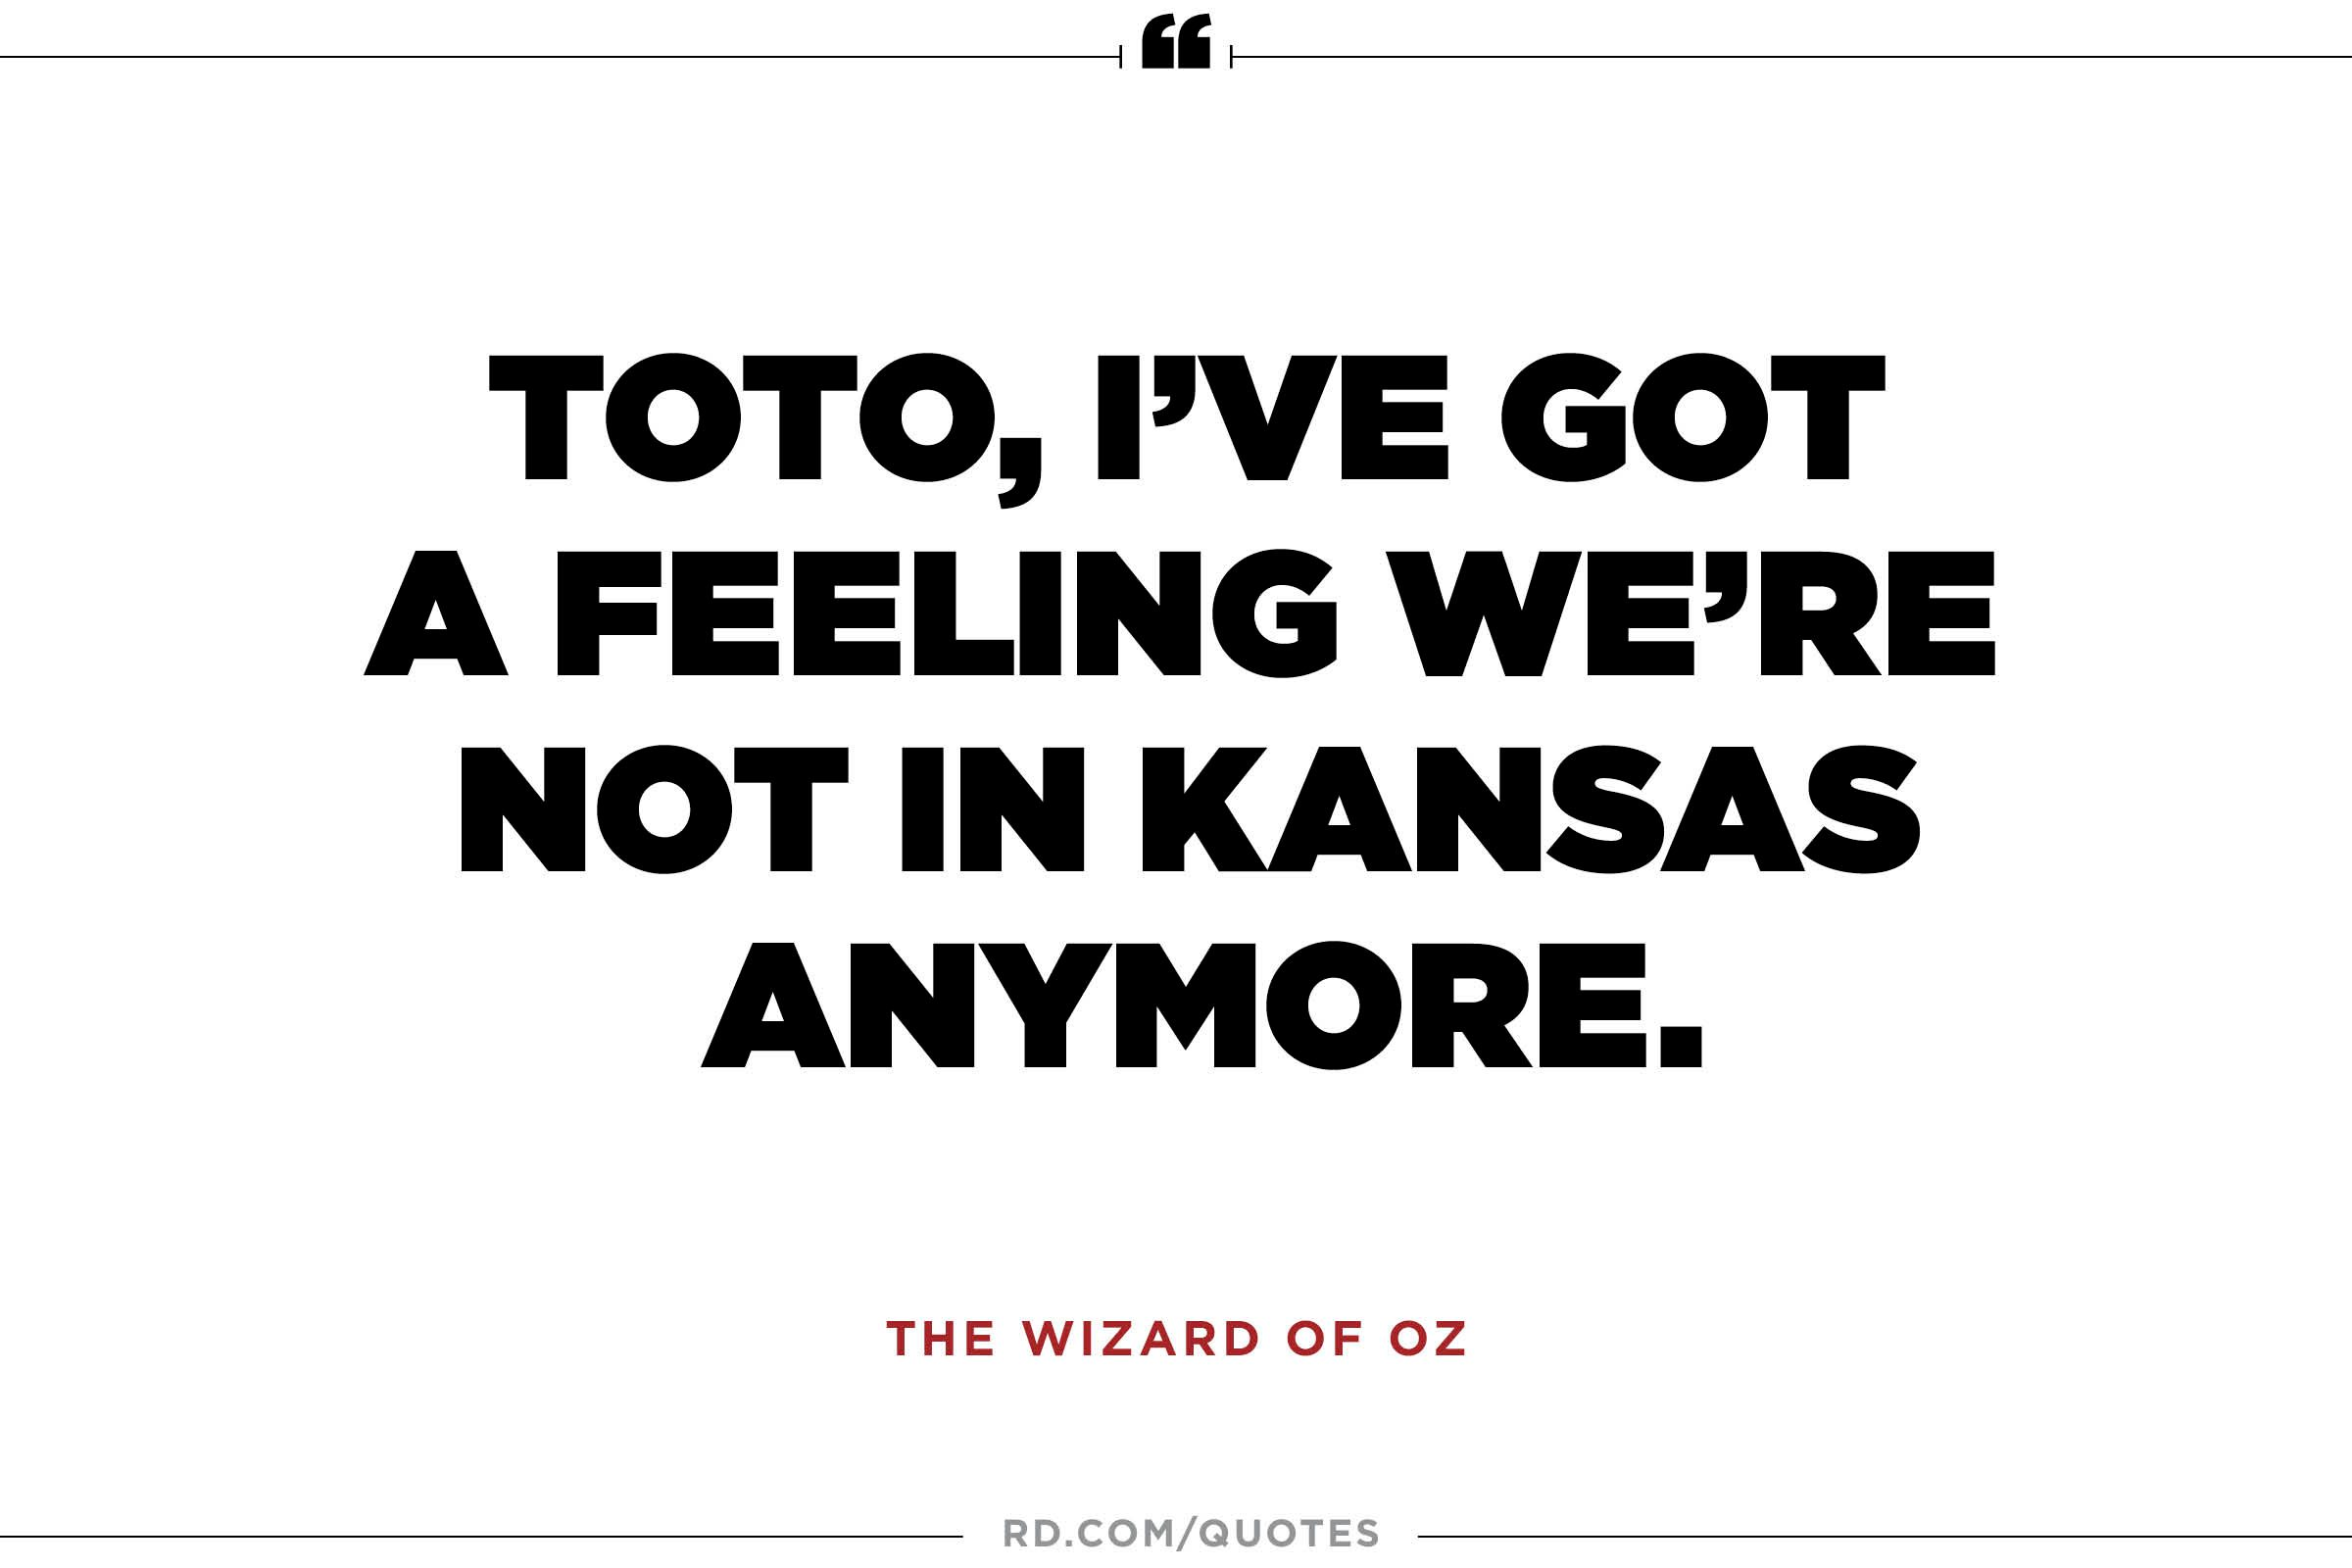 Wizard of oz quotes - From The Wizard Of Oz